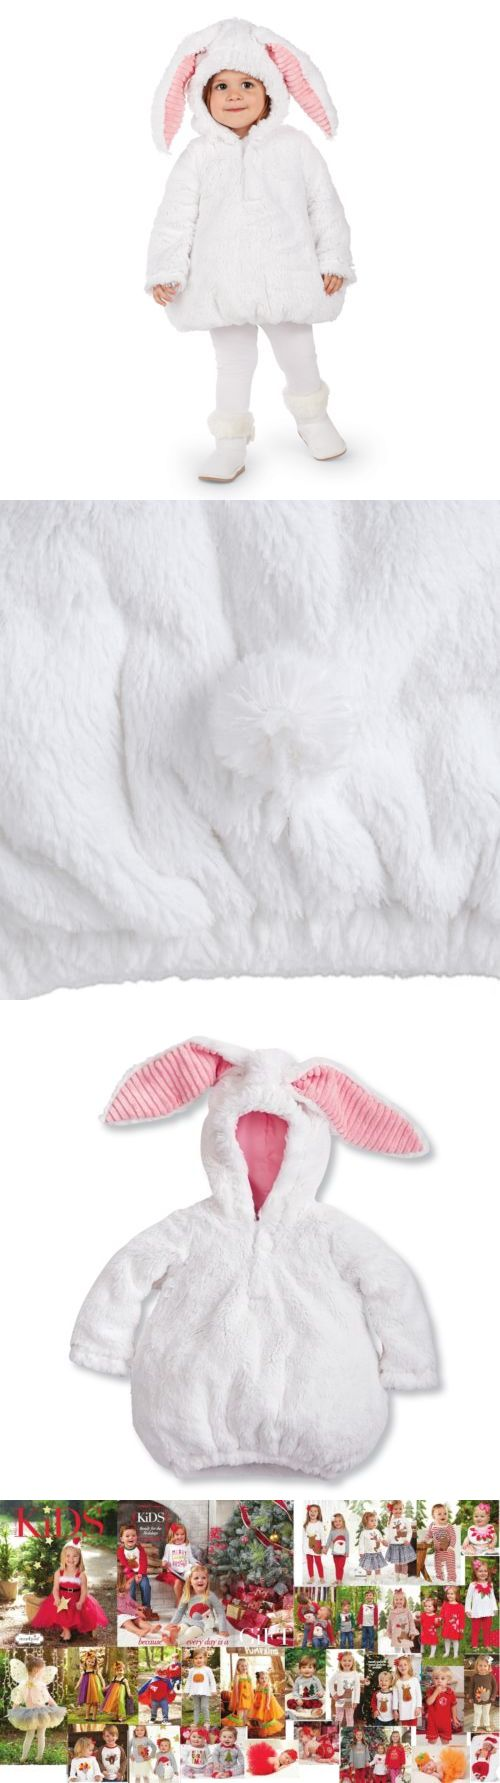 Halloween Costumes Kids: Mud Pie Mh6 Baby Infant To 18Mo Girl Boy Halloween, Easter Bunny Costume 1002021 -> BUY IT NOW ONLY: $38.98 on eBay!